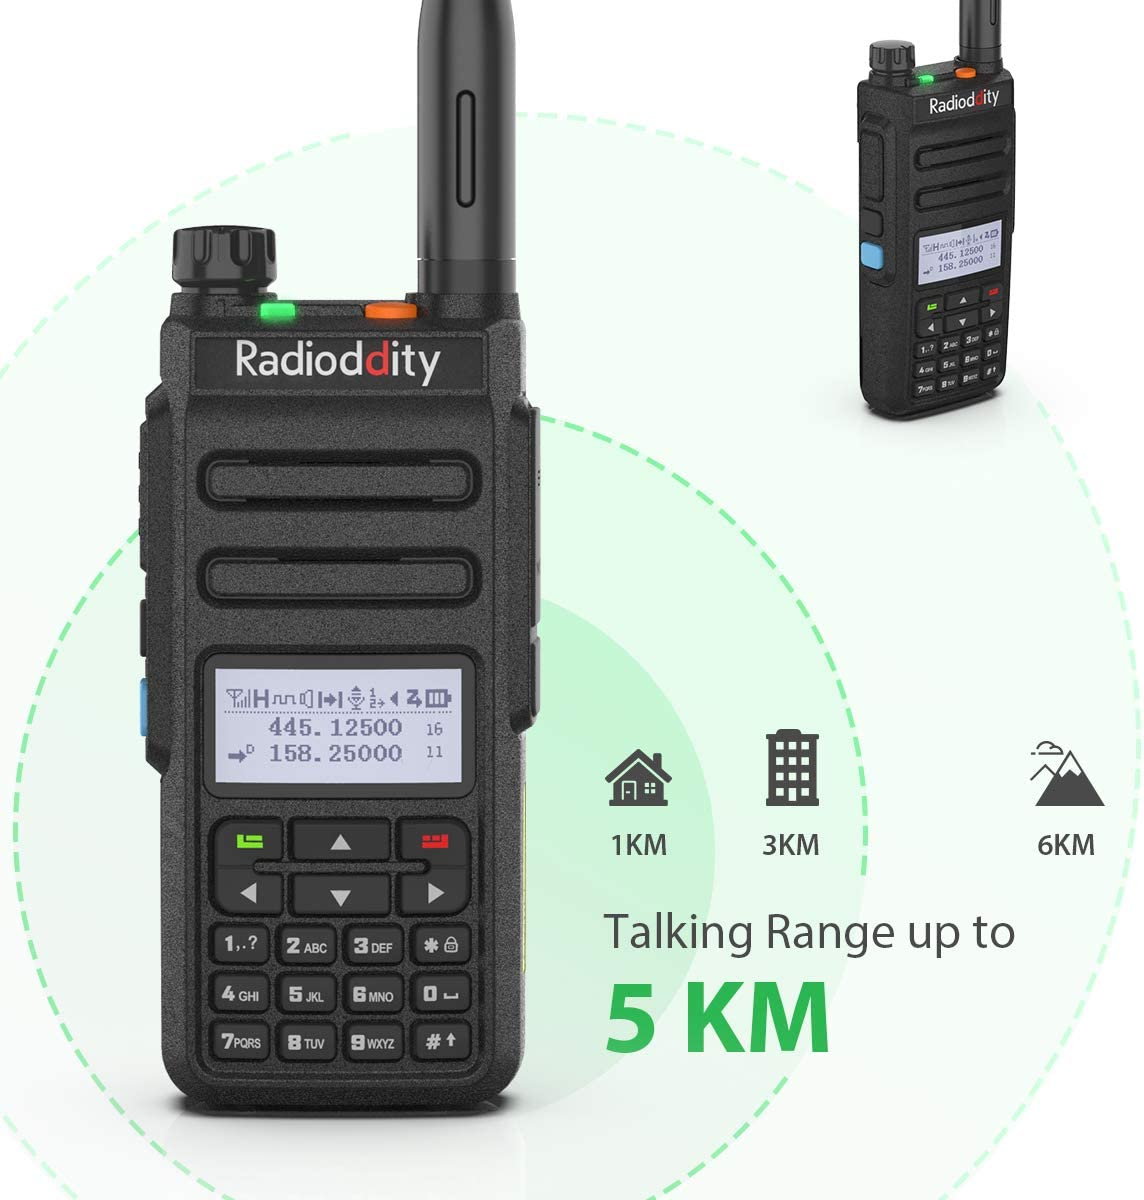 Remote Speaker Mic Radioddity GD-77 Dual Band Dual Time Slot DMR Digital//Analog Two Way Radio VHF//UHF 1024 Channels Ham Amateur Radio w//Free Programming Cable and Charger